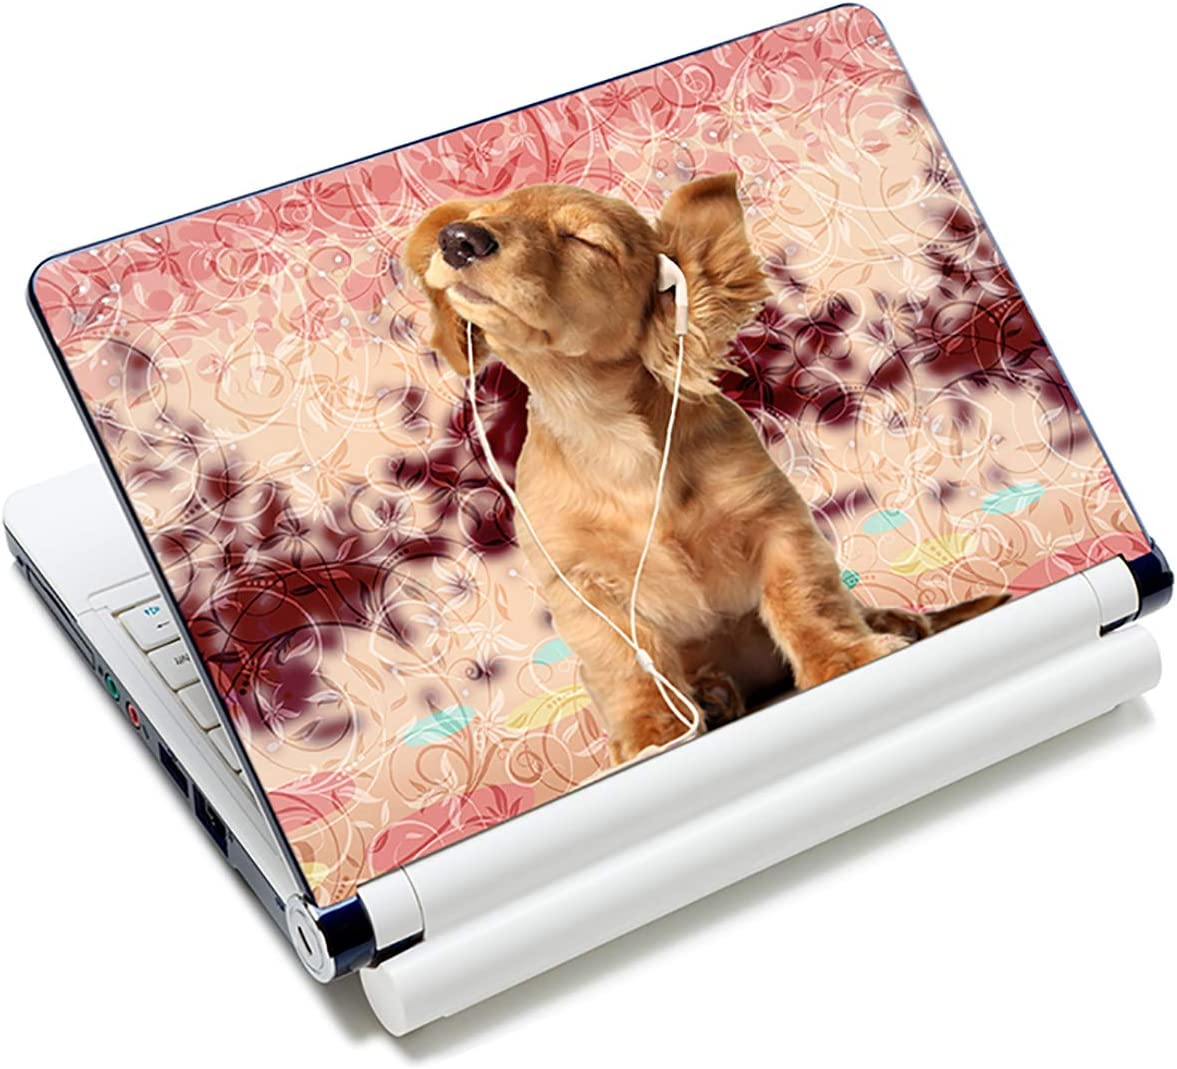 "Laptop Skin Vinyl Sticker Decal, 12"" 13"" 13.3"" 14"" 15"" 15.4"" 15.6 inch Laptop Skin Sticker Cover Art Decal Protector Fits HP Dell Lenovo Compaq Apple Asus Acer (Cute Dog)"